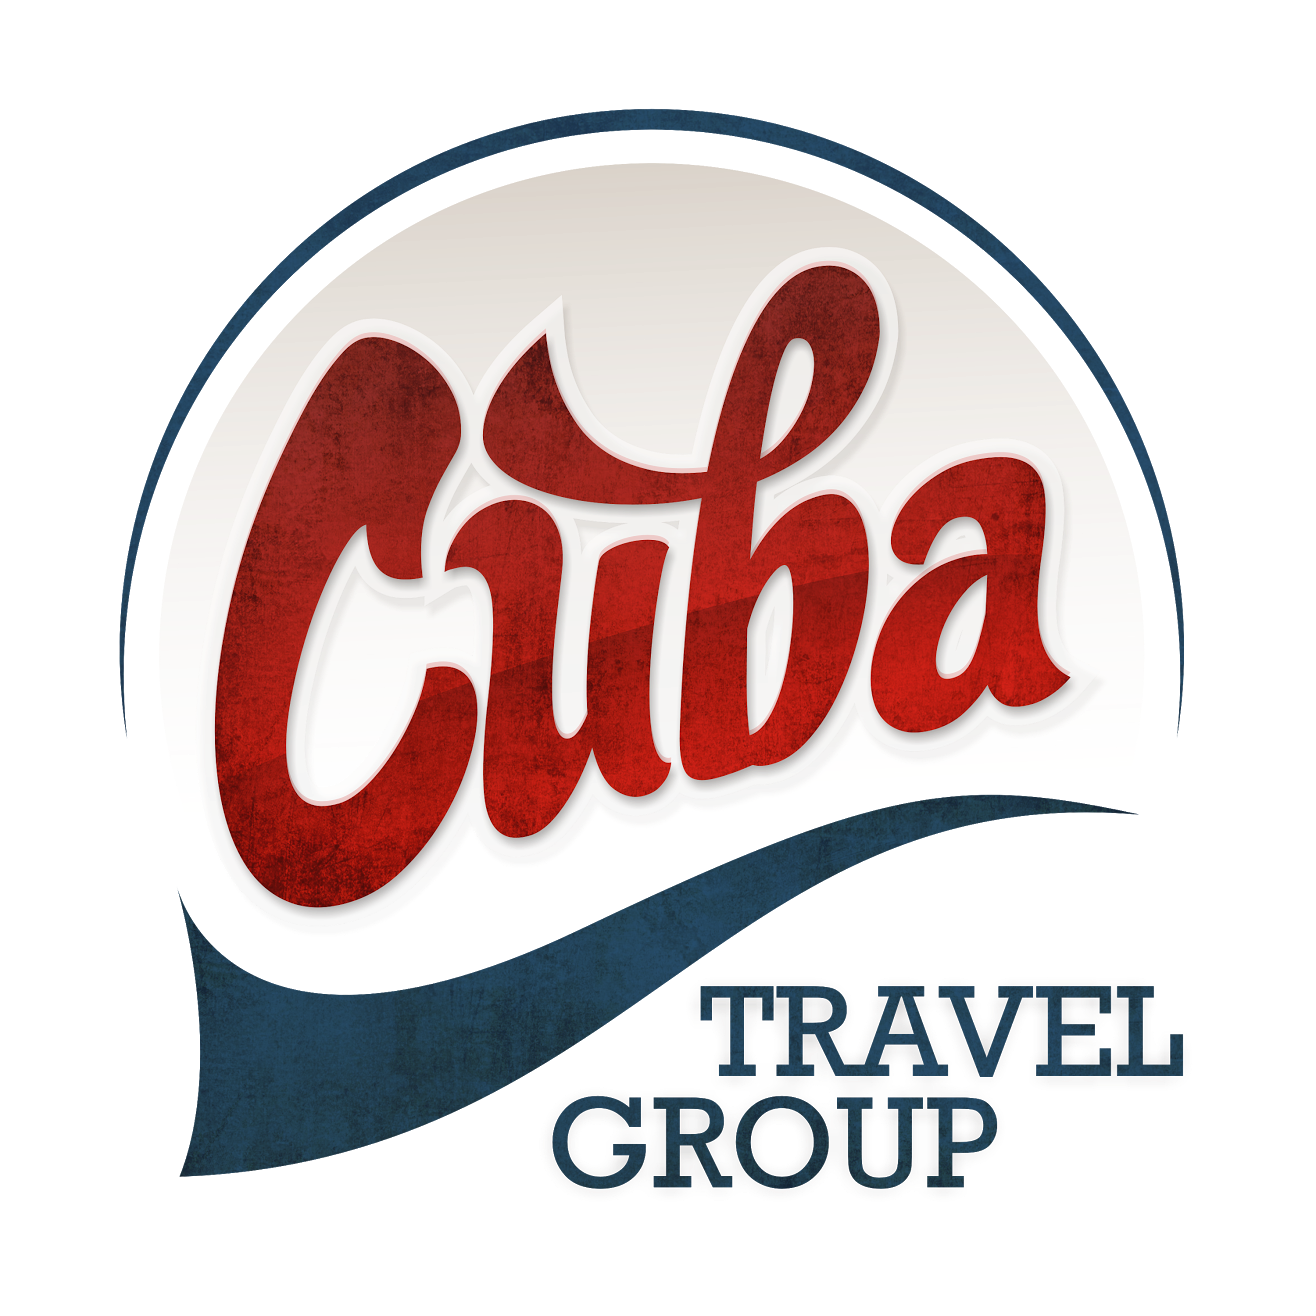 Cuba Travel Group